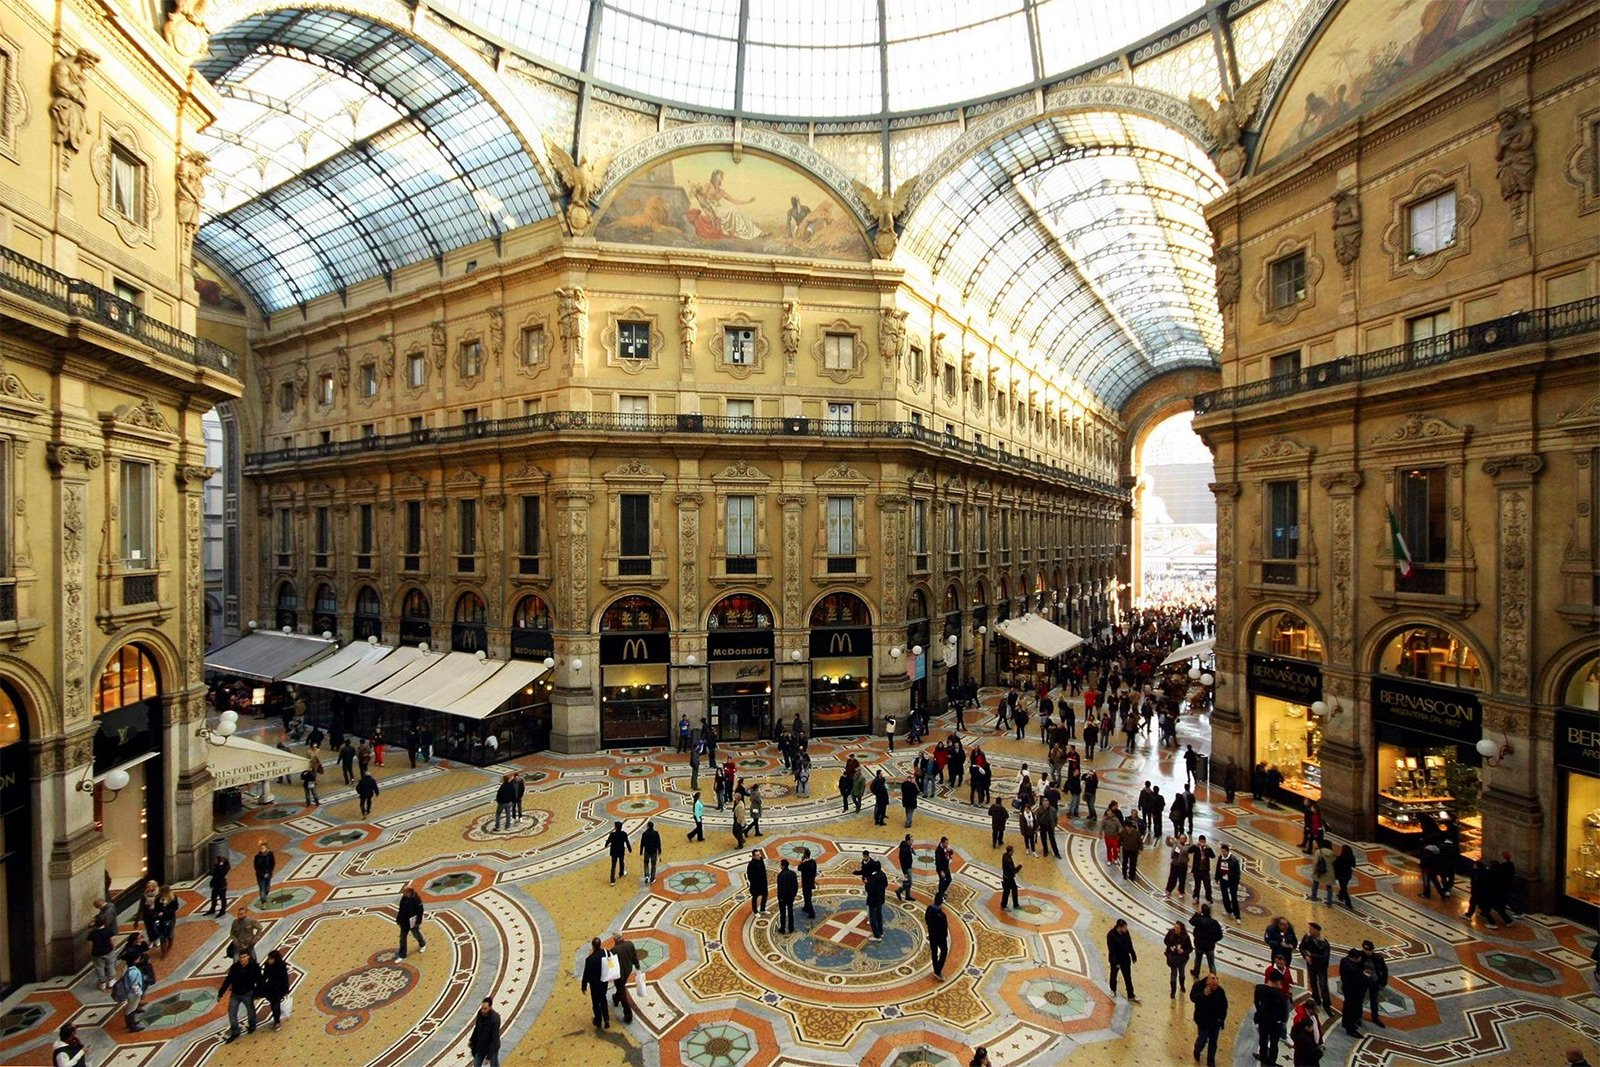 How to walk through the Galleria Vittorio Emanuele II in Milan